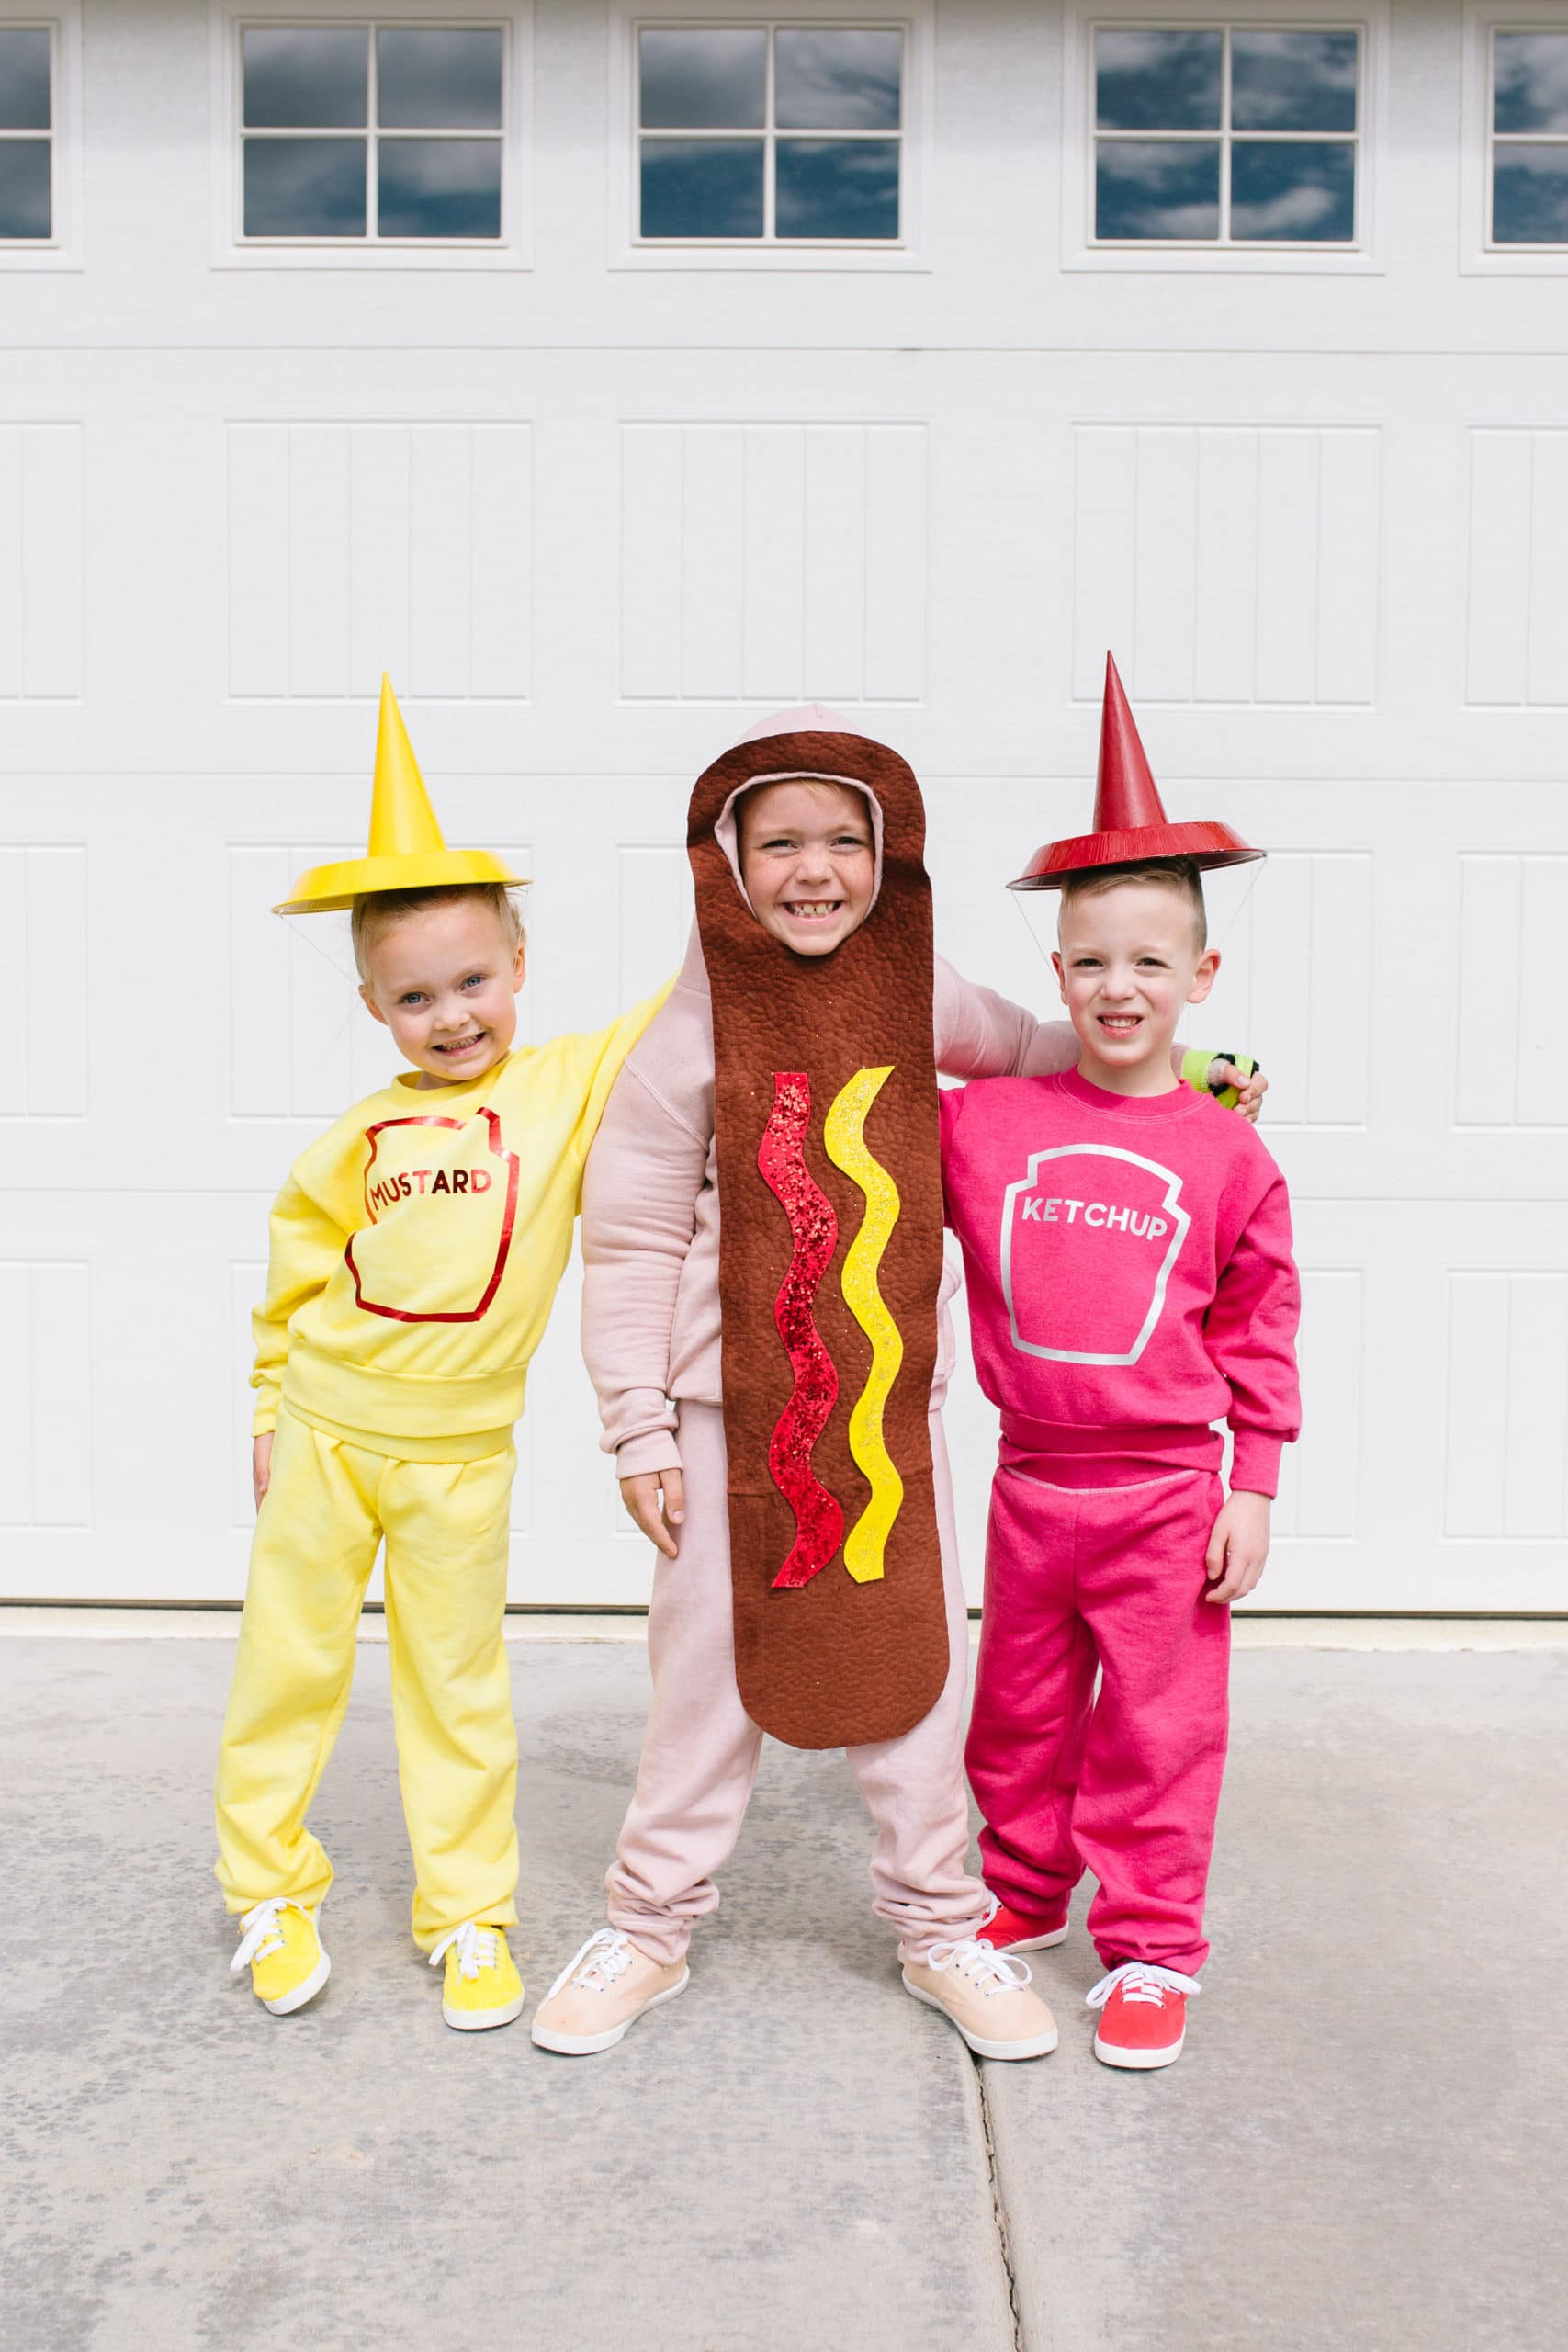 Children dressed as hot dog, ketchup, and mustard_Pretty Life Girls